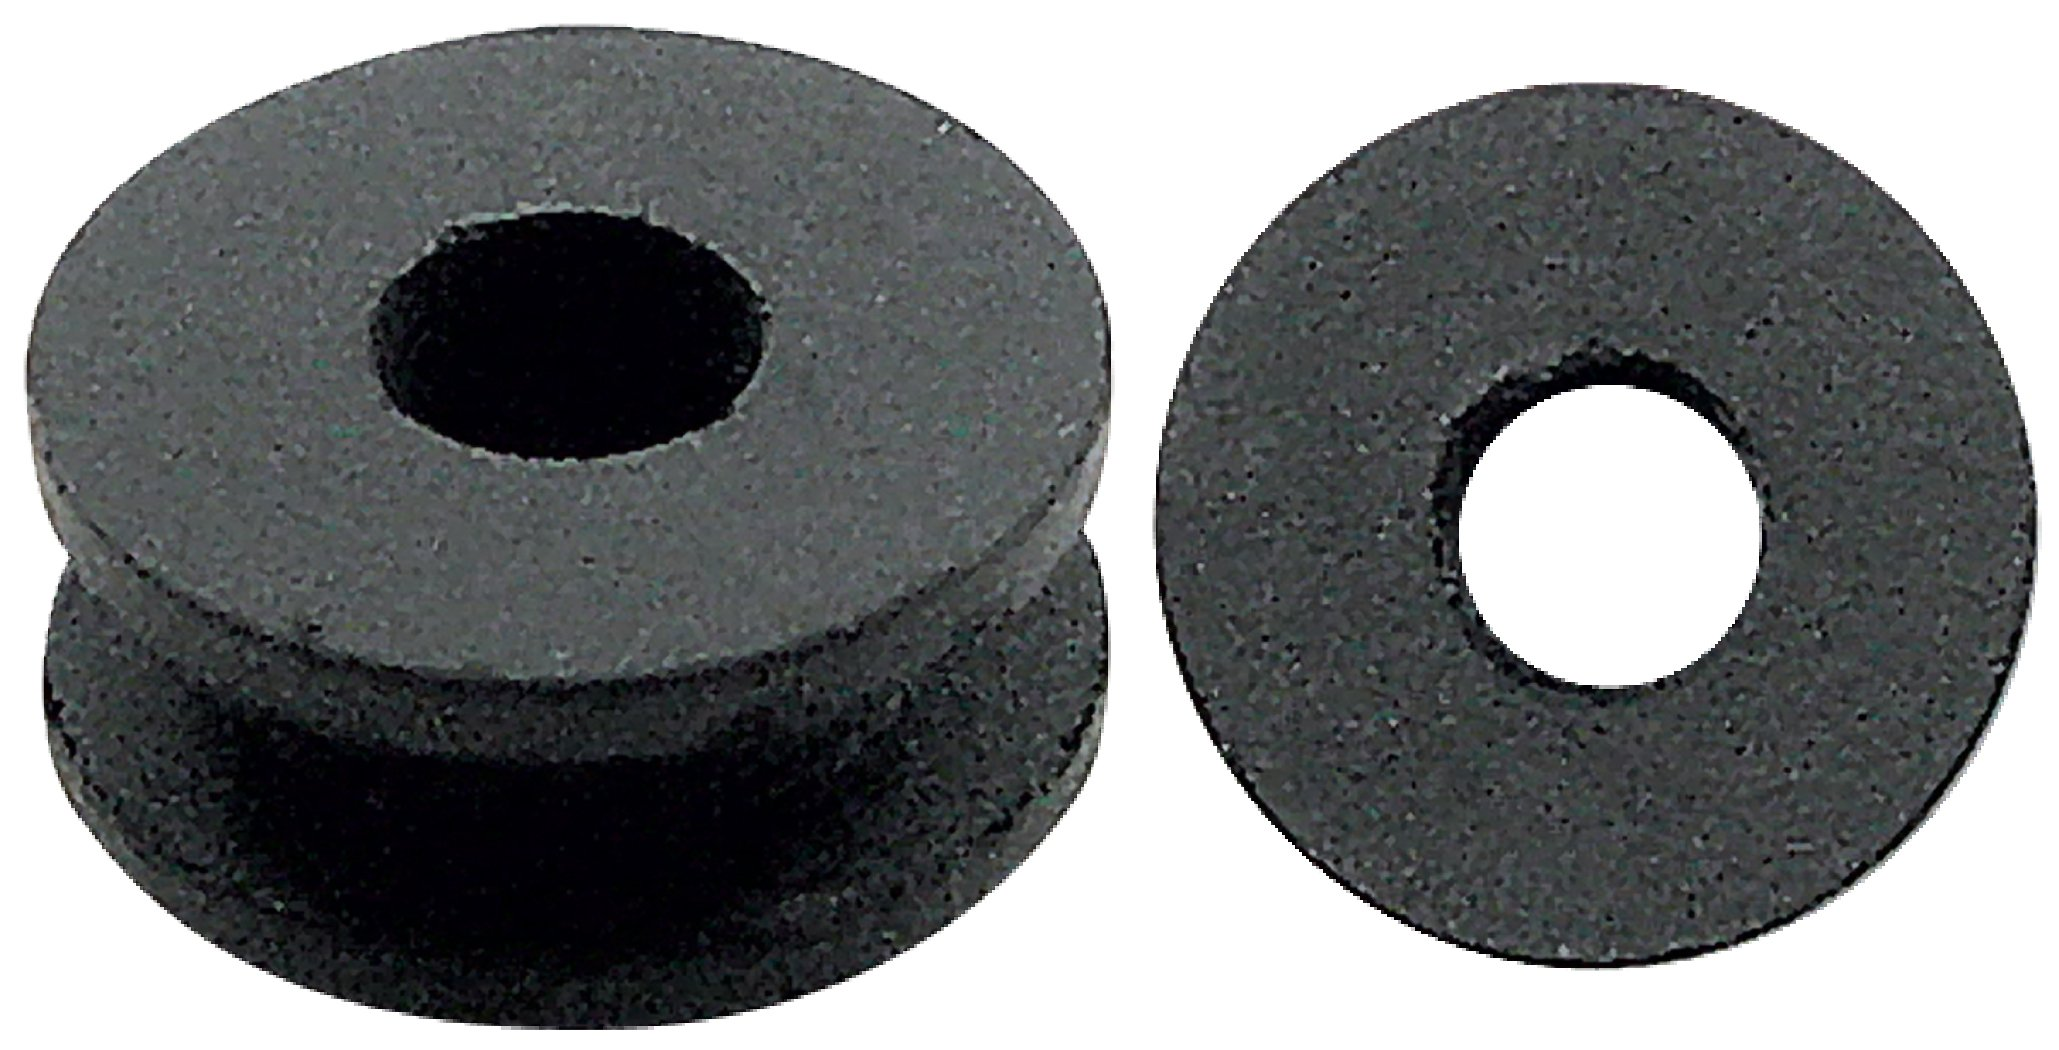 The Hillman Group 405940 Rubber Grommet 3/8, 10-Pack